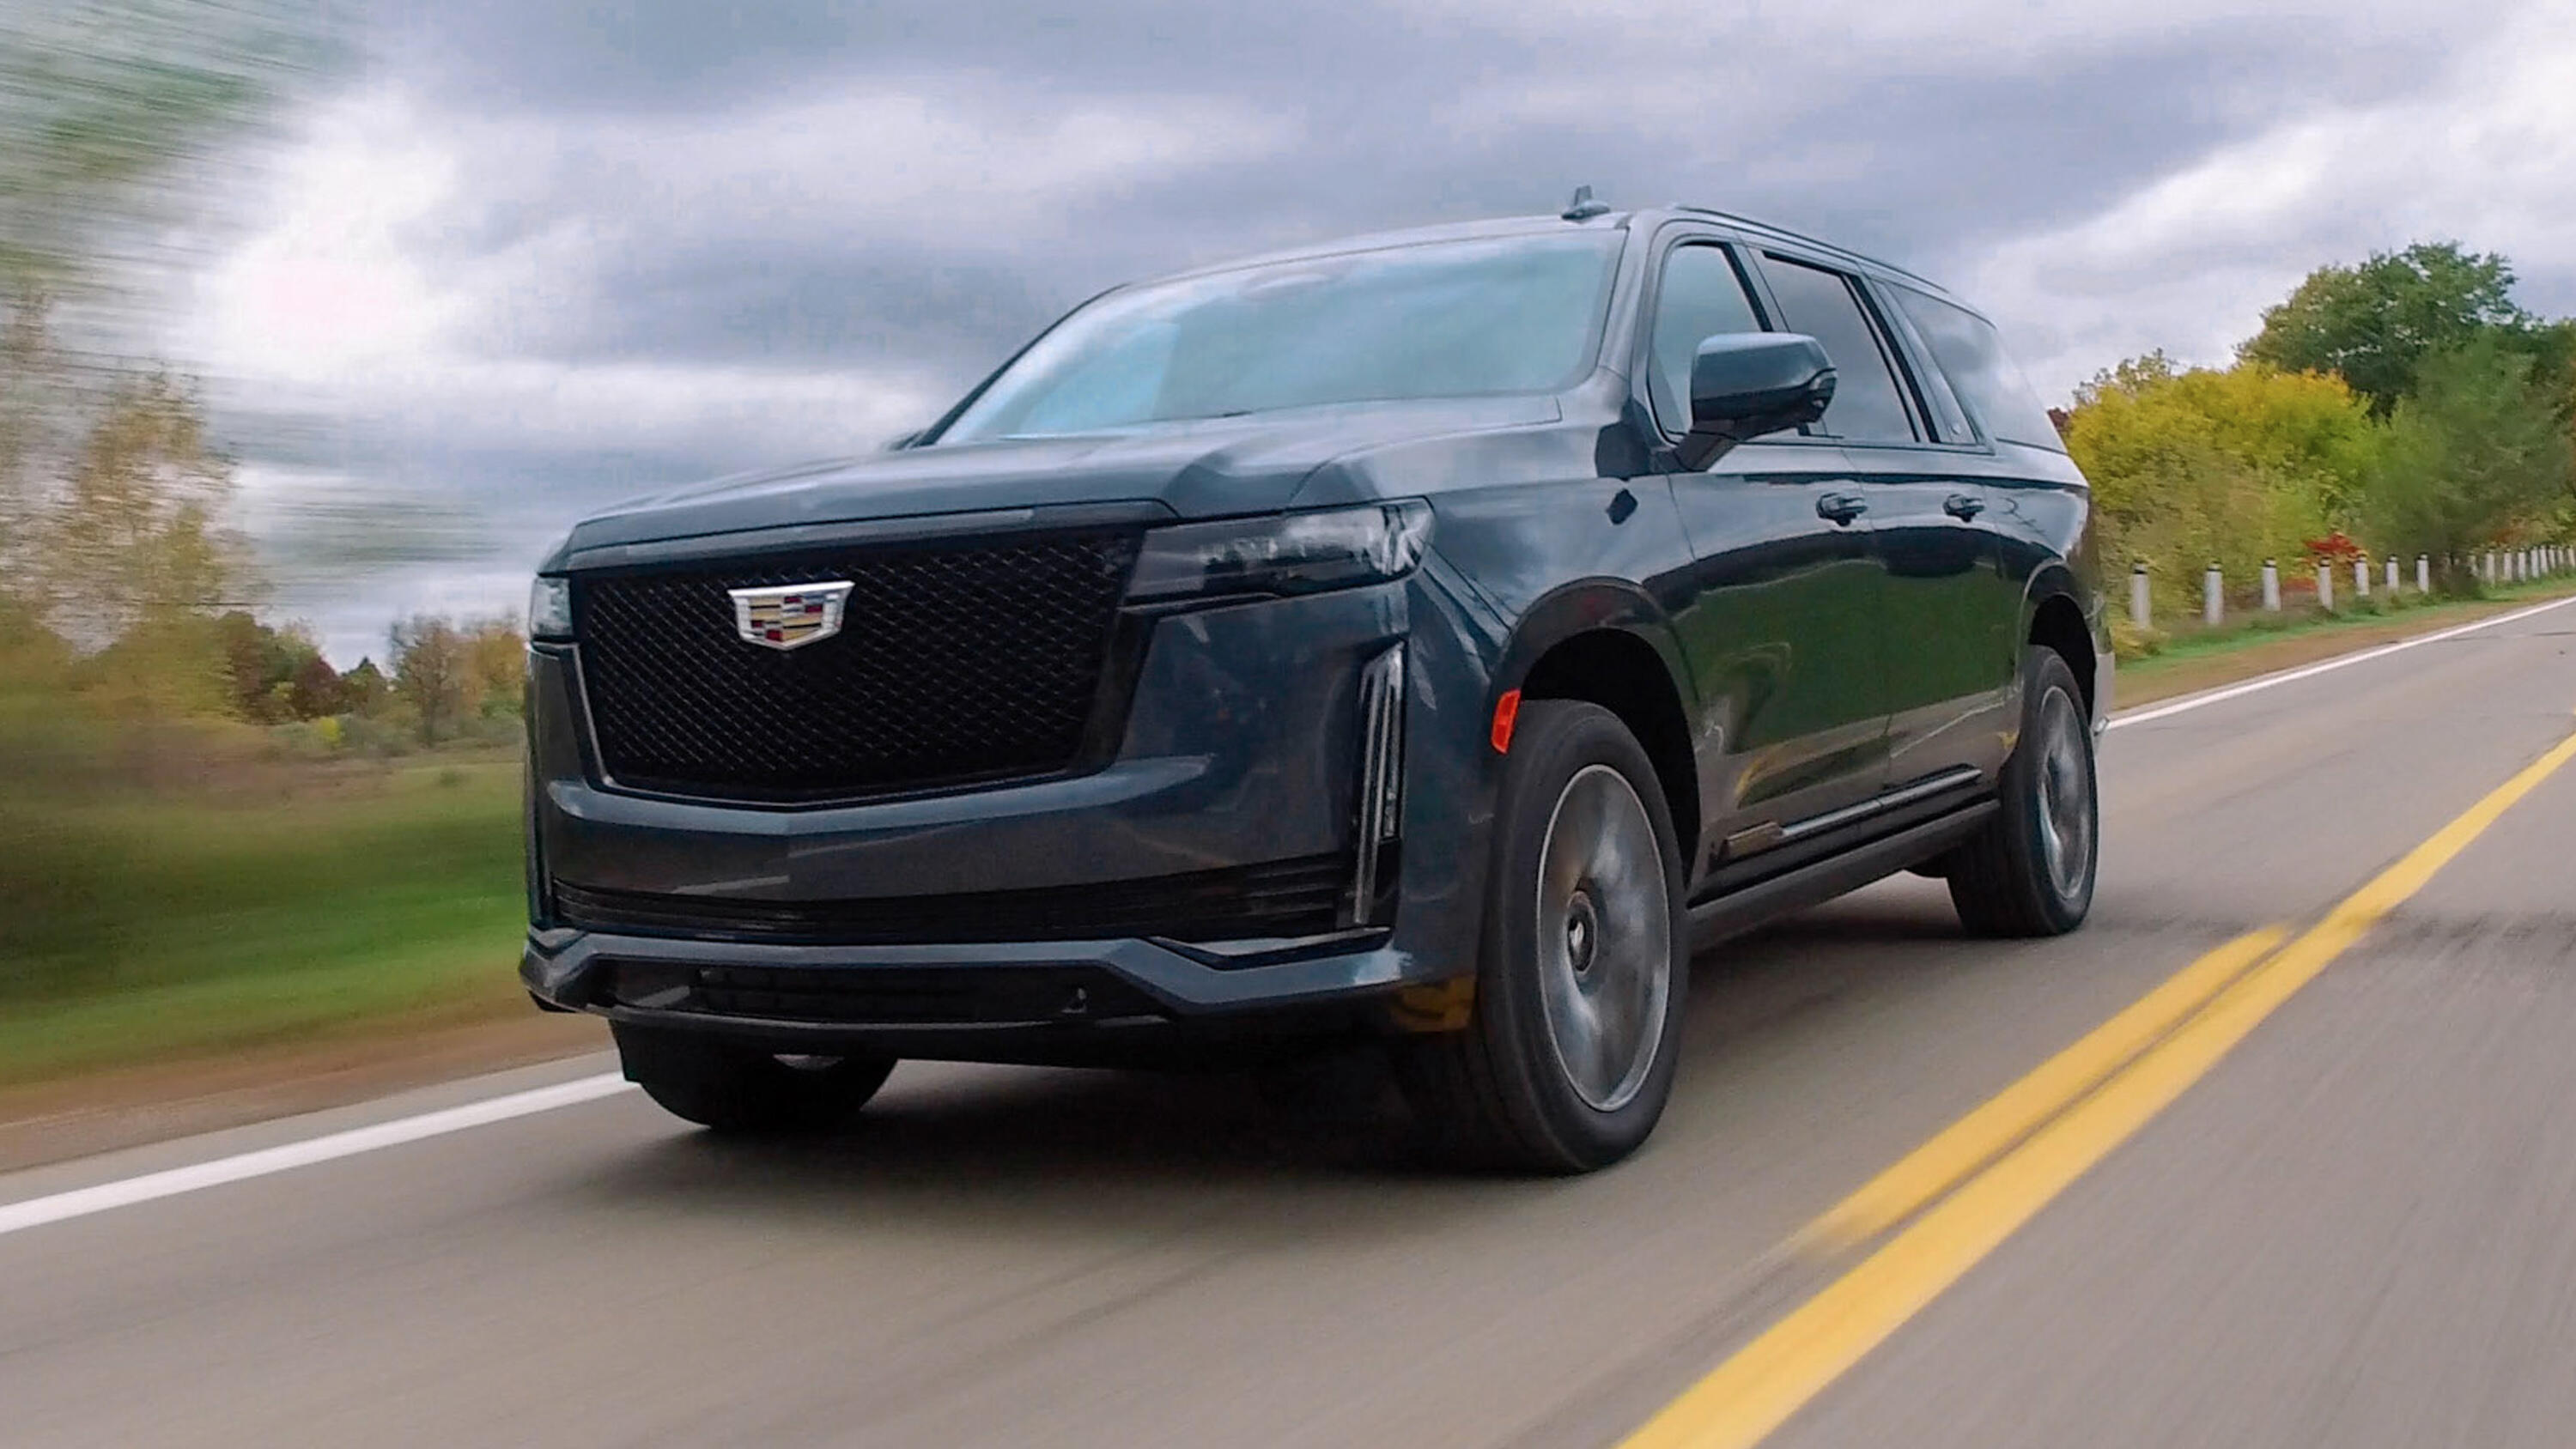 Video: The 2021 Cadillac Escalade is truly luxurious